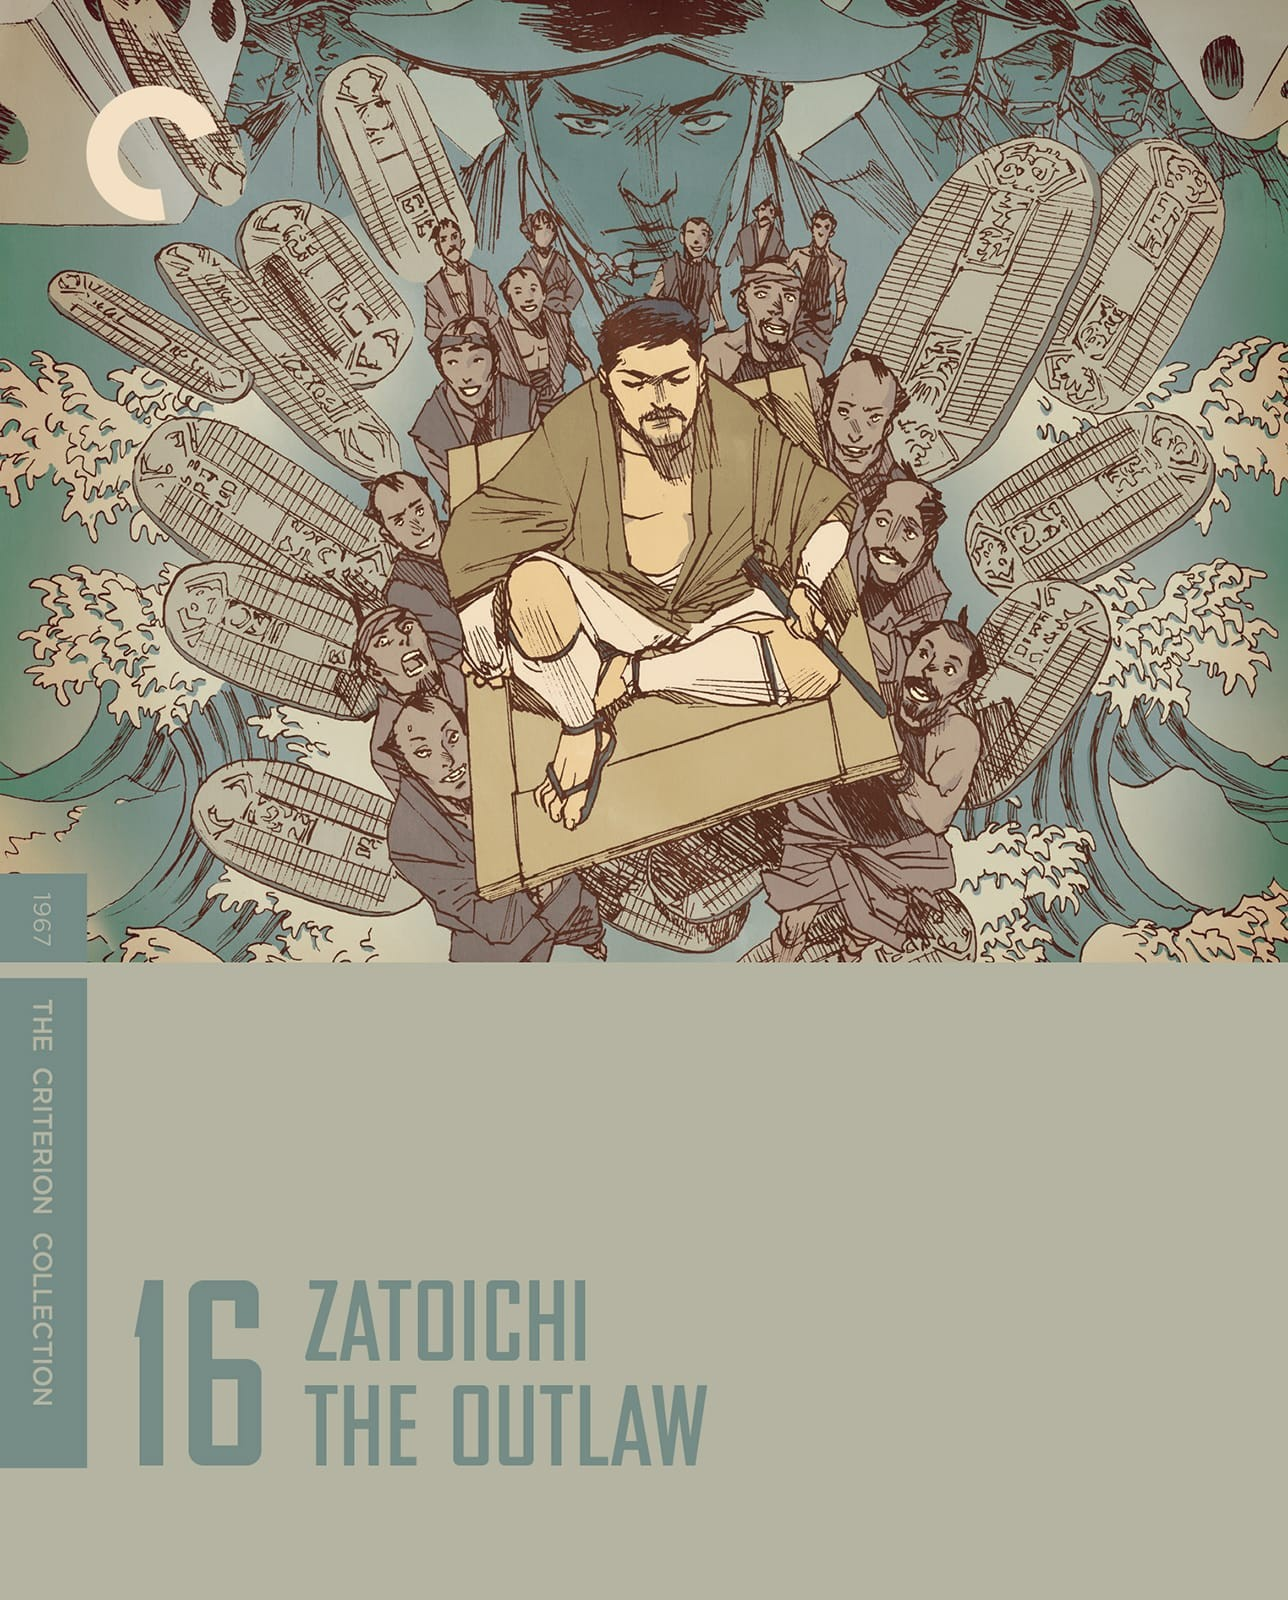 Zatoichi the Outlaw